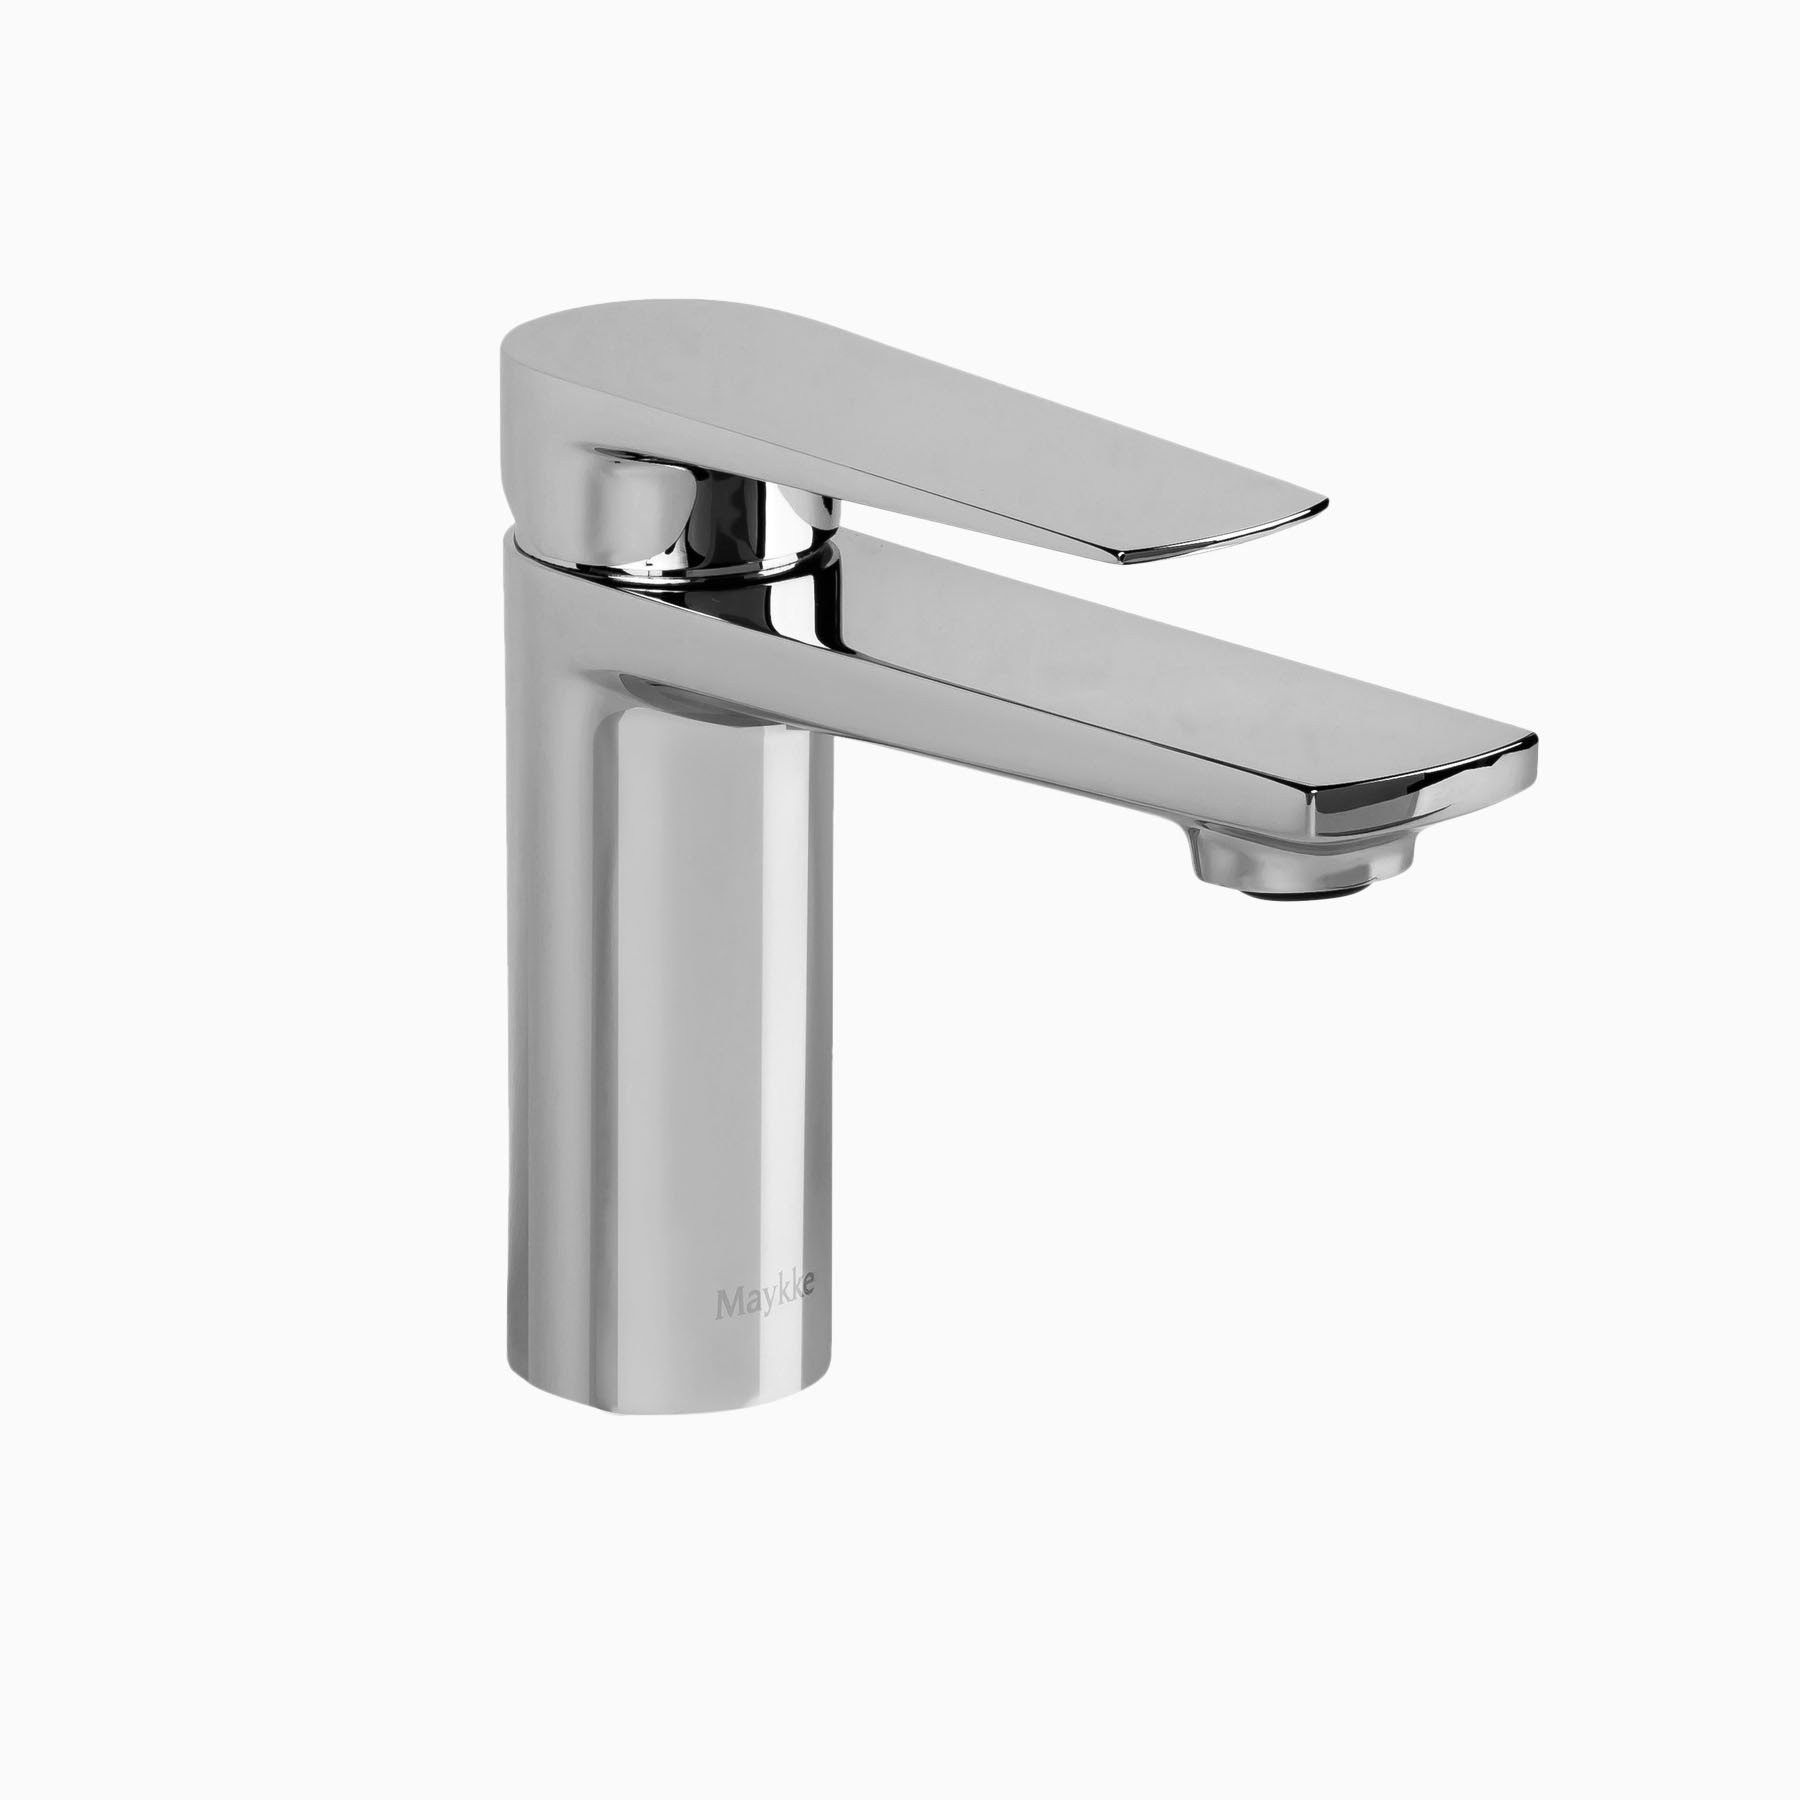 Adalbert brass bathroom sink faucet polished chrome single hole single handle lever modern for Polished chrome bathroom countertop accessories